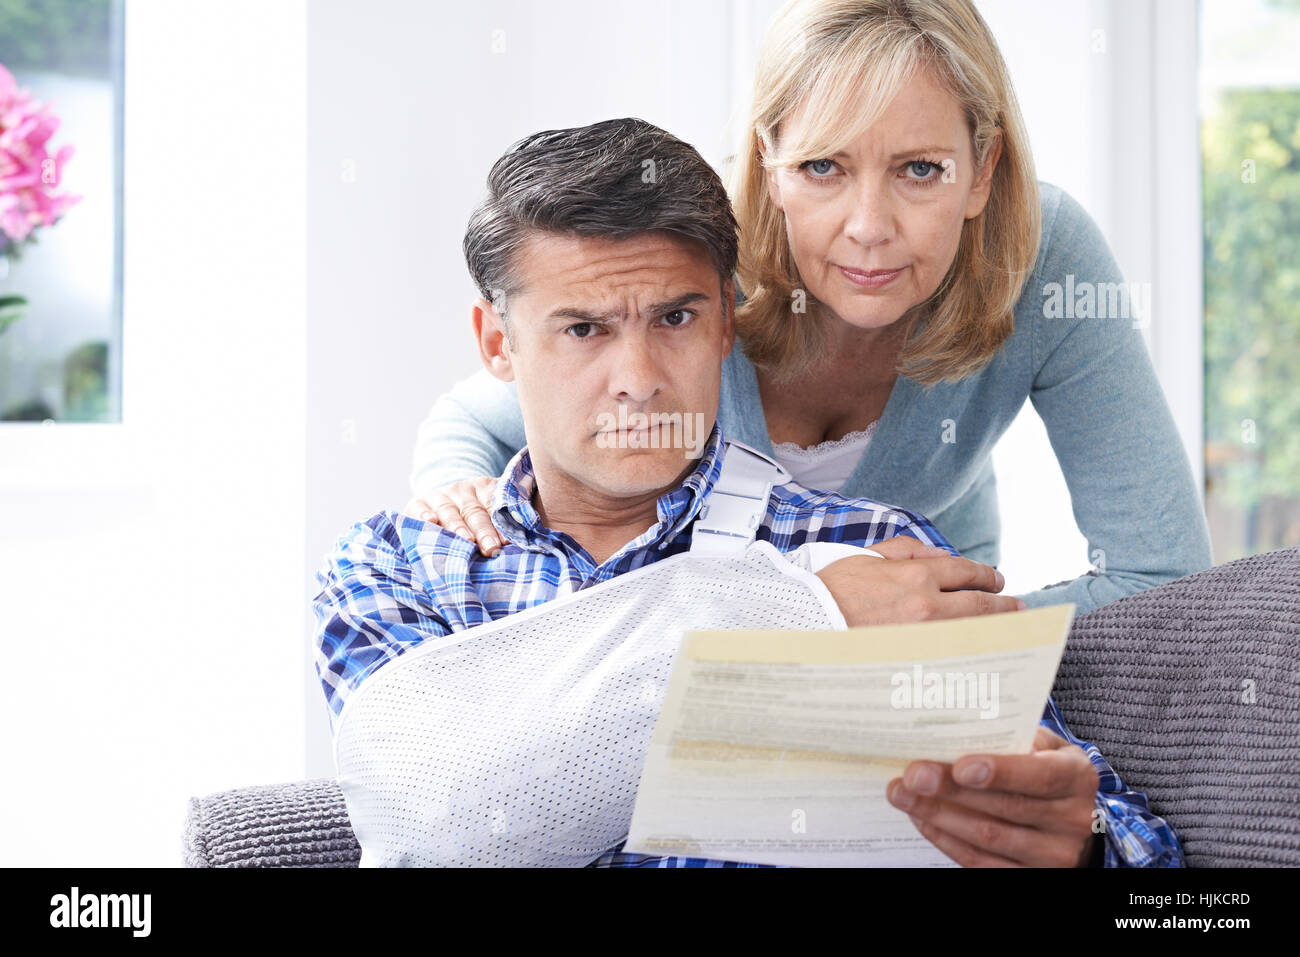 Couple Reading Letter About Man's Injury - Stock Image